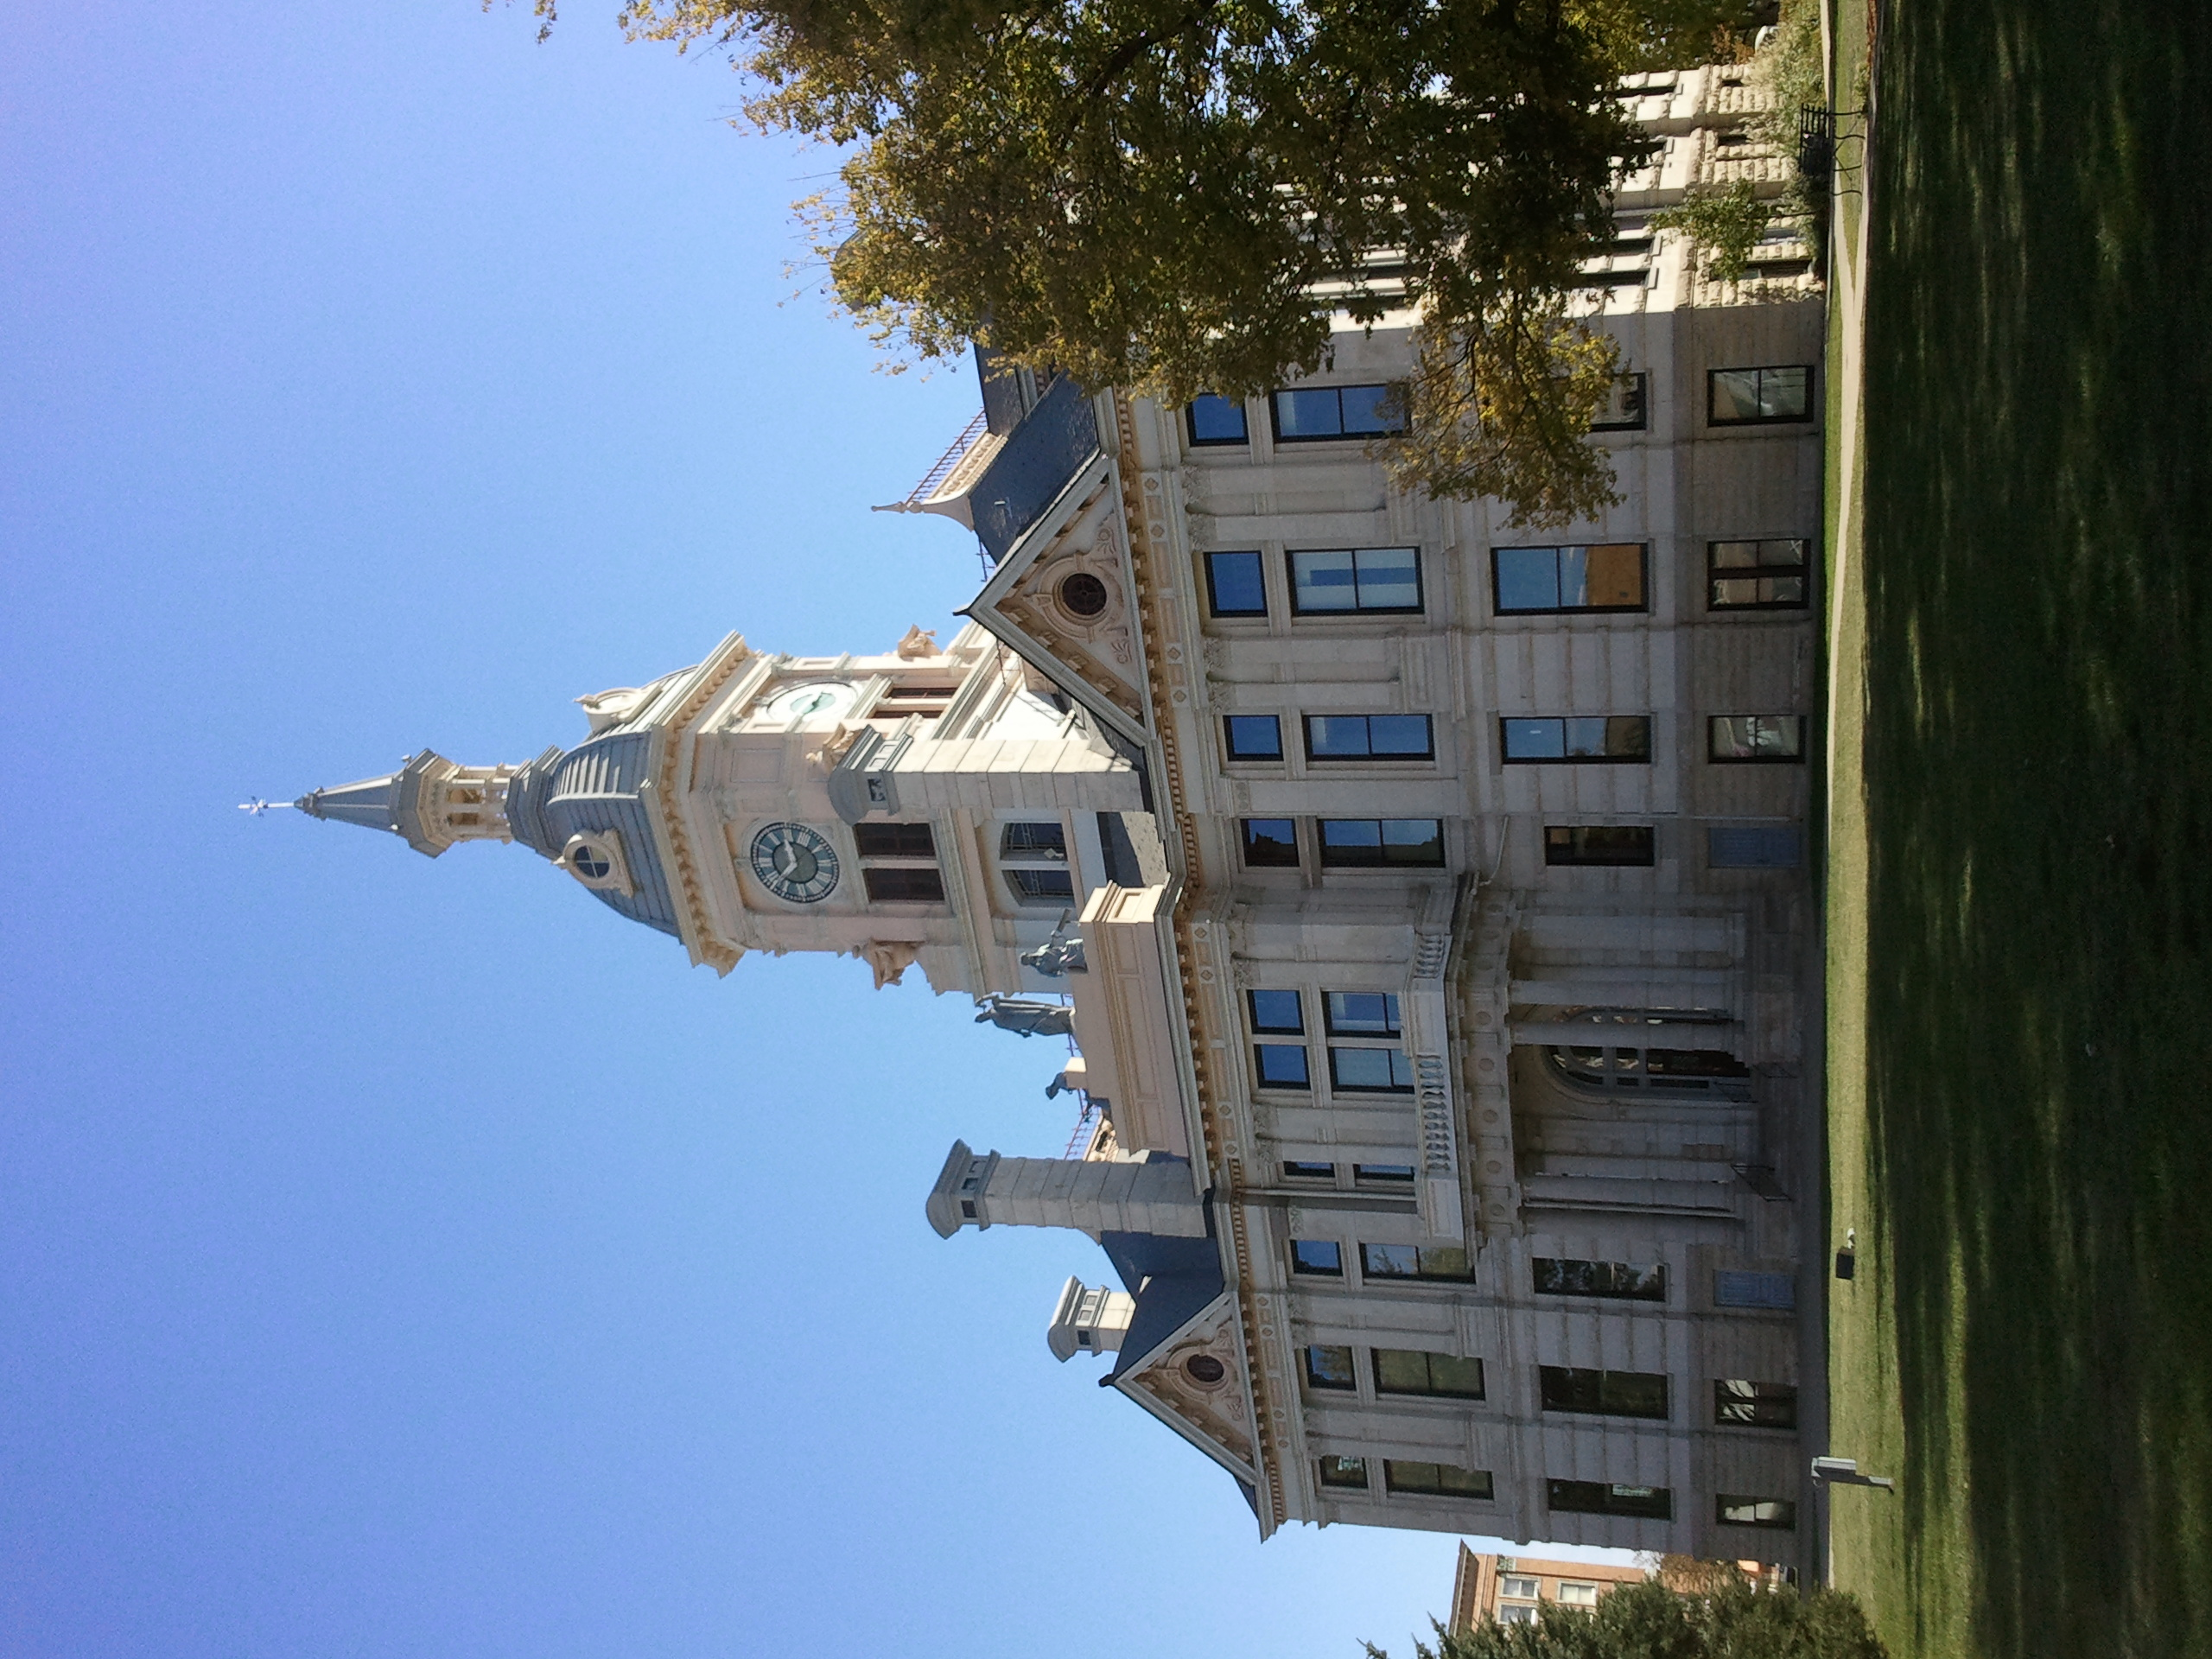 File:Marshall County Courthouse, Marshalltown, Iowa 10.jpgbalance of marshall county